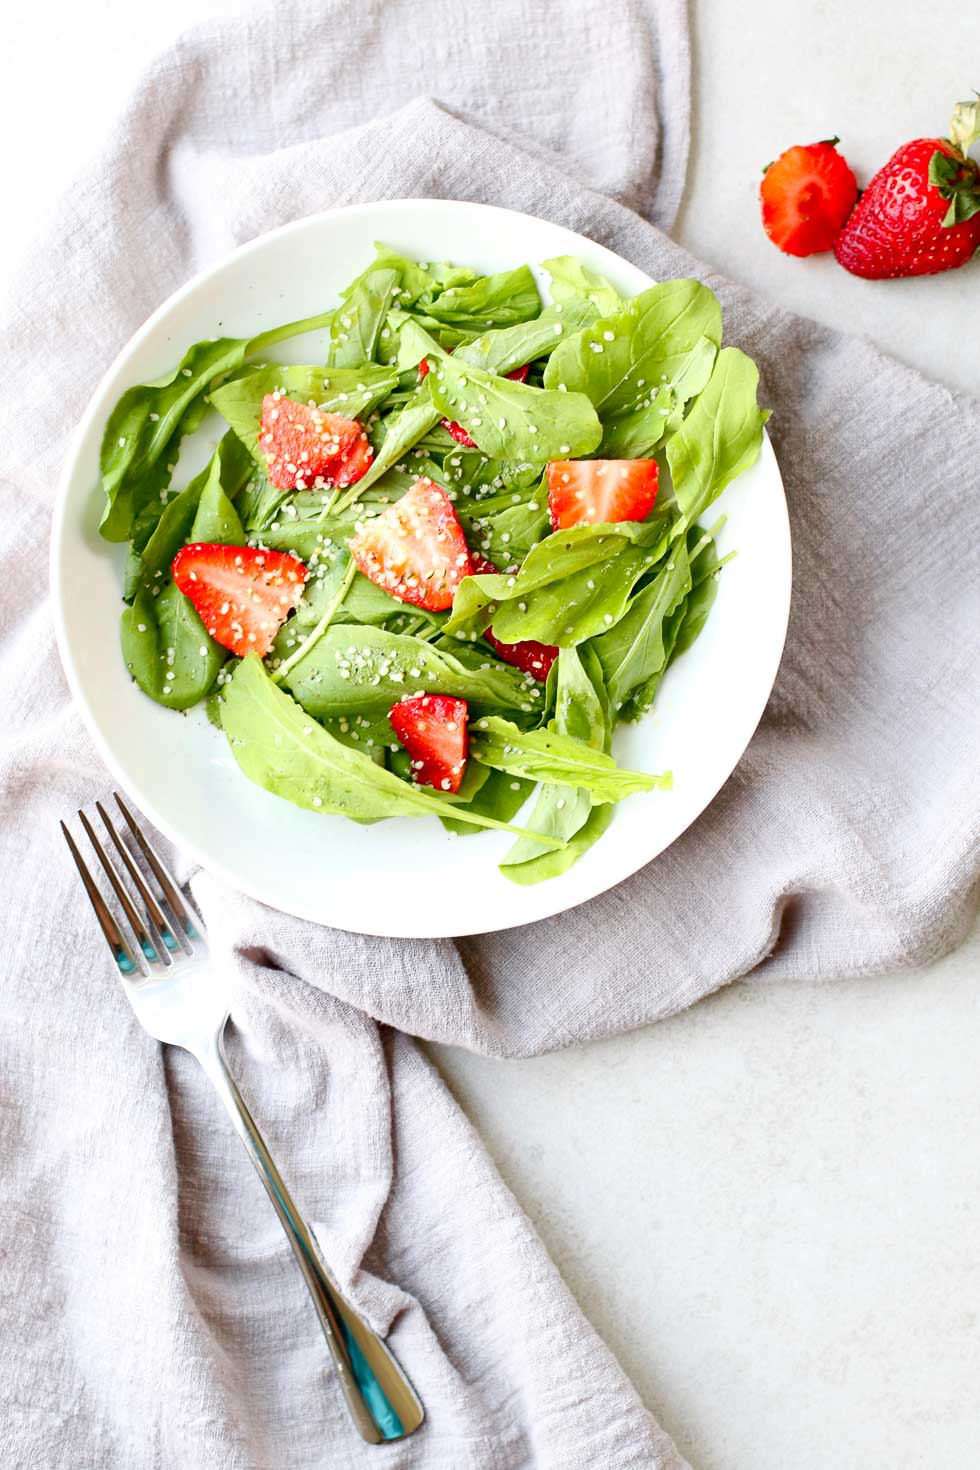 Strawberry Arugula Salad with Hemp Seed with fork